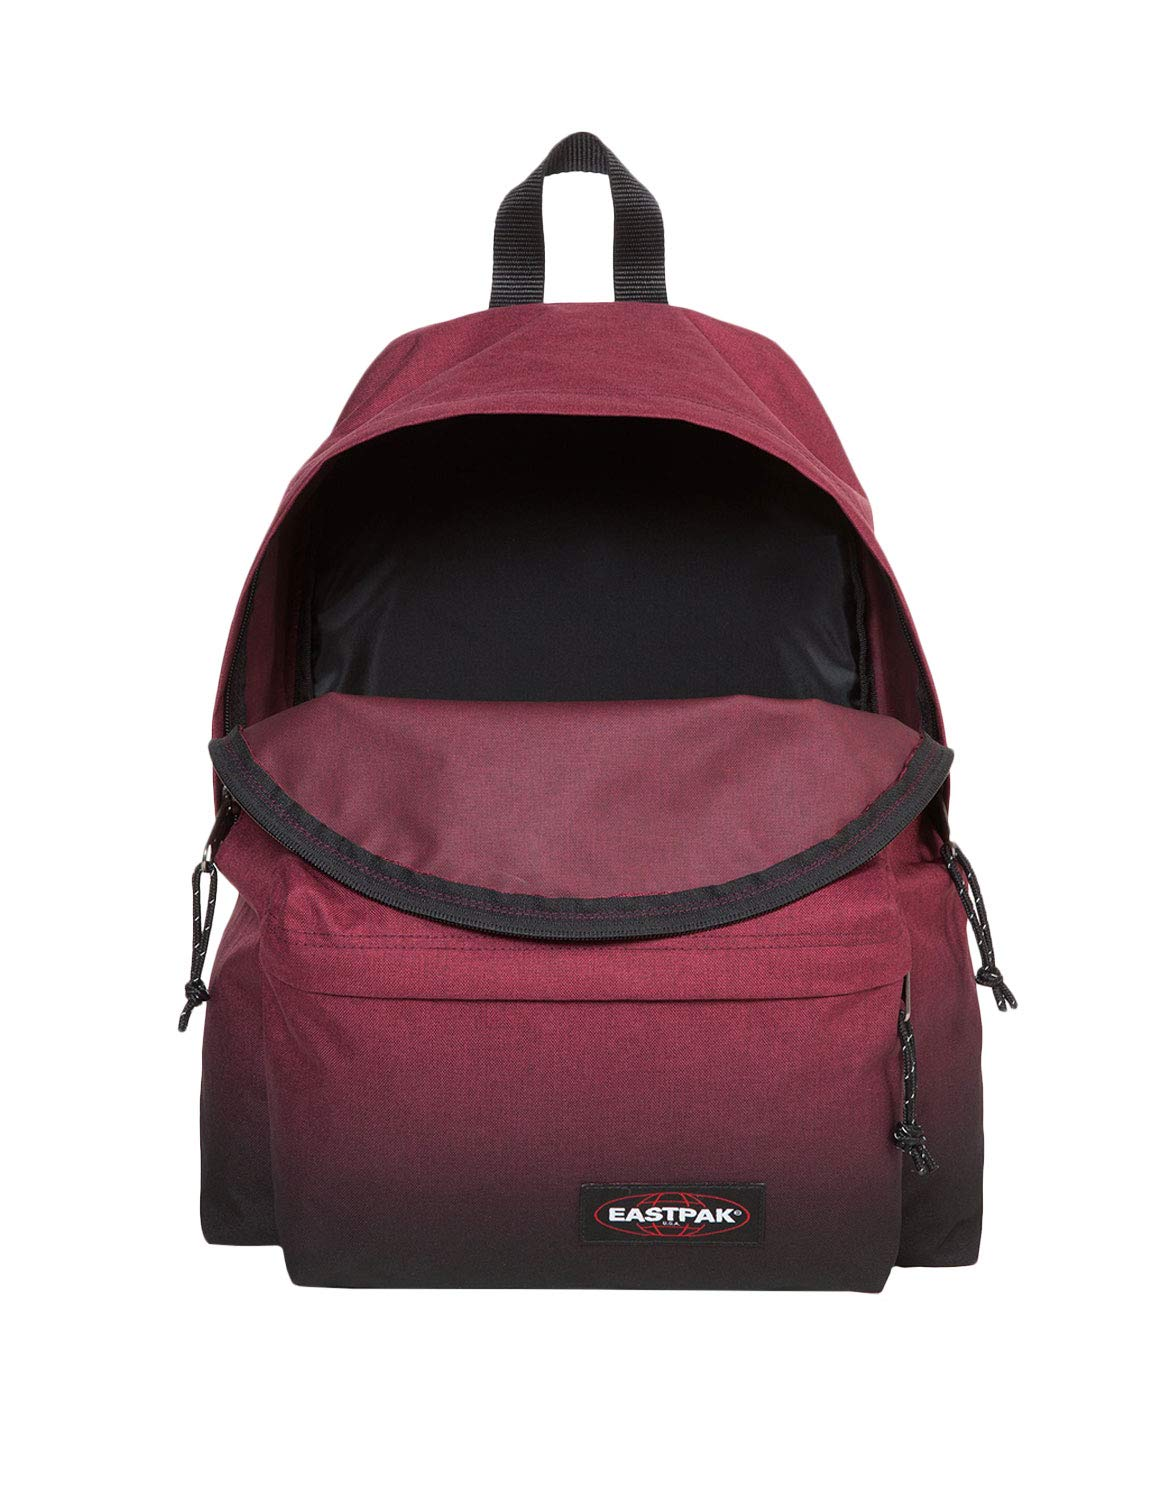 Eastpak Authentic Authentic Authentic Collection Padded Pak'r SH2 Rucksack 40 cm B07G3ZFH8Y Daypacks Niedrige Kosten f21427